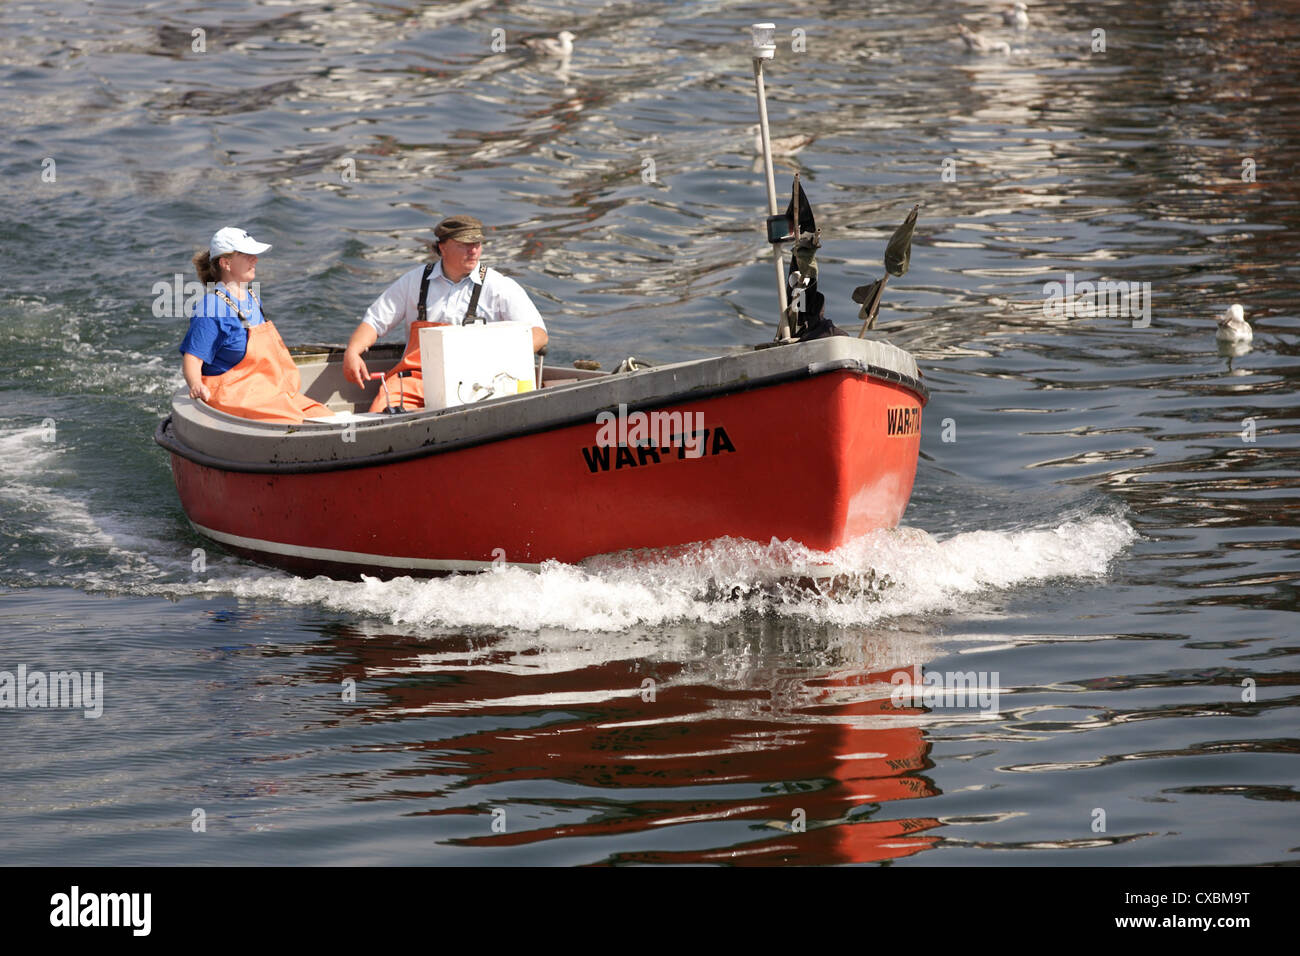 Warnemuende fishing boat on the old river stock photo 50659220 alamy warnemuende fishing boat on the old river publicscrutiny Image collections